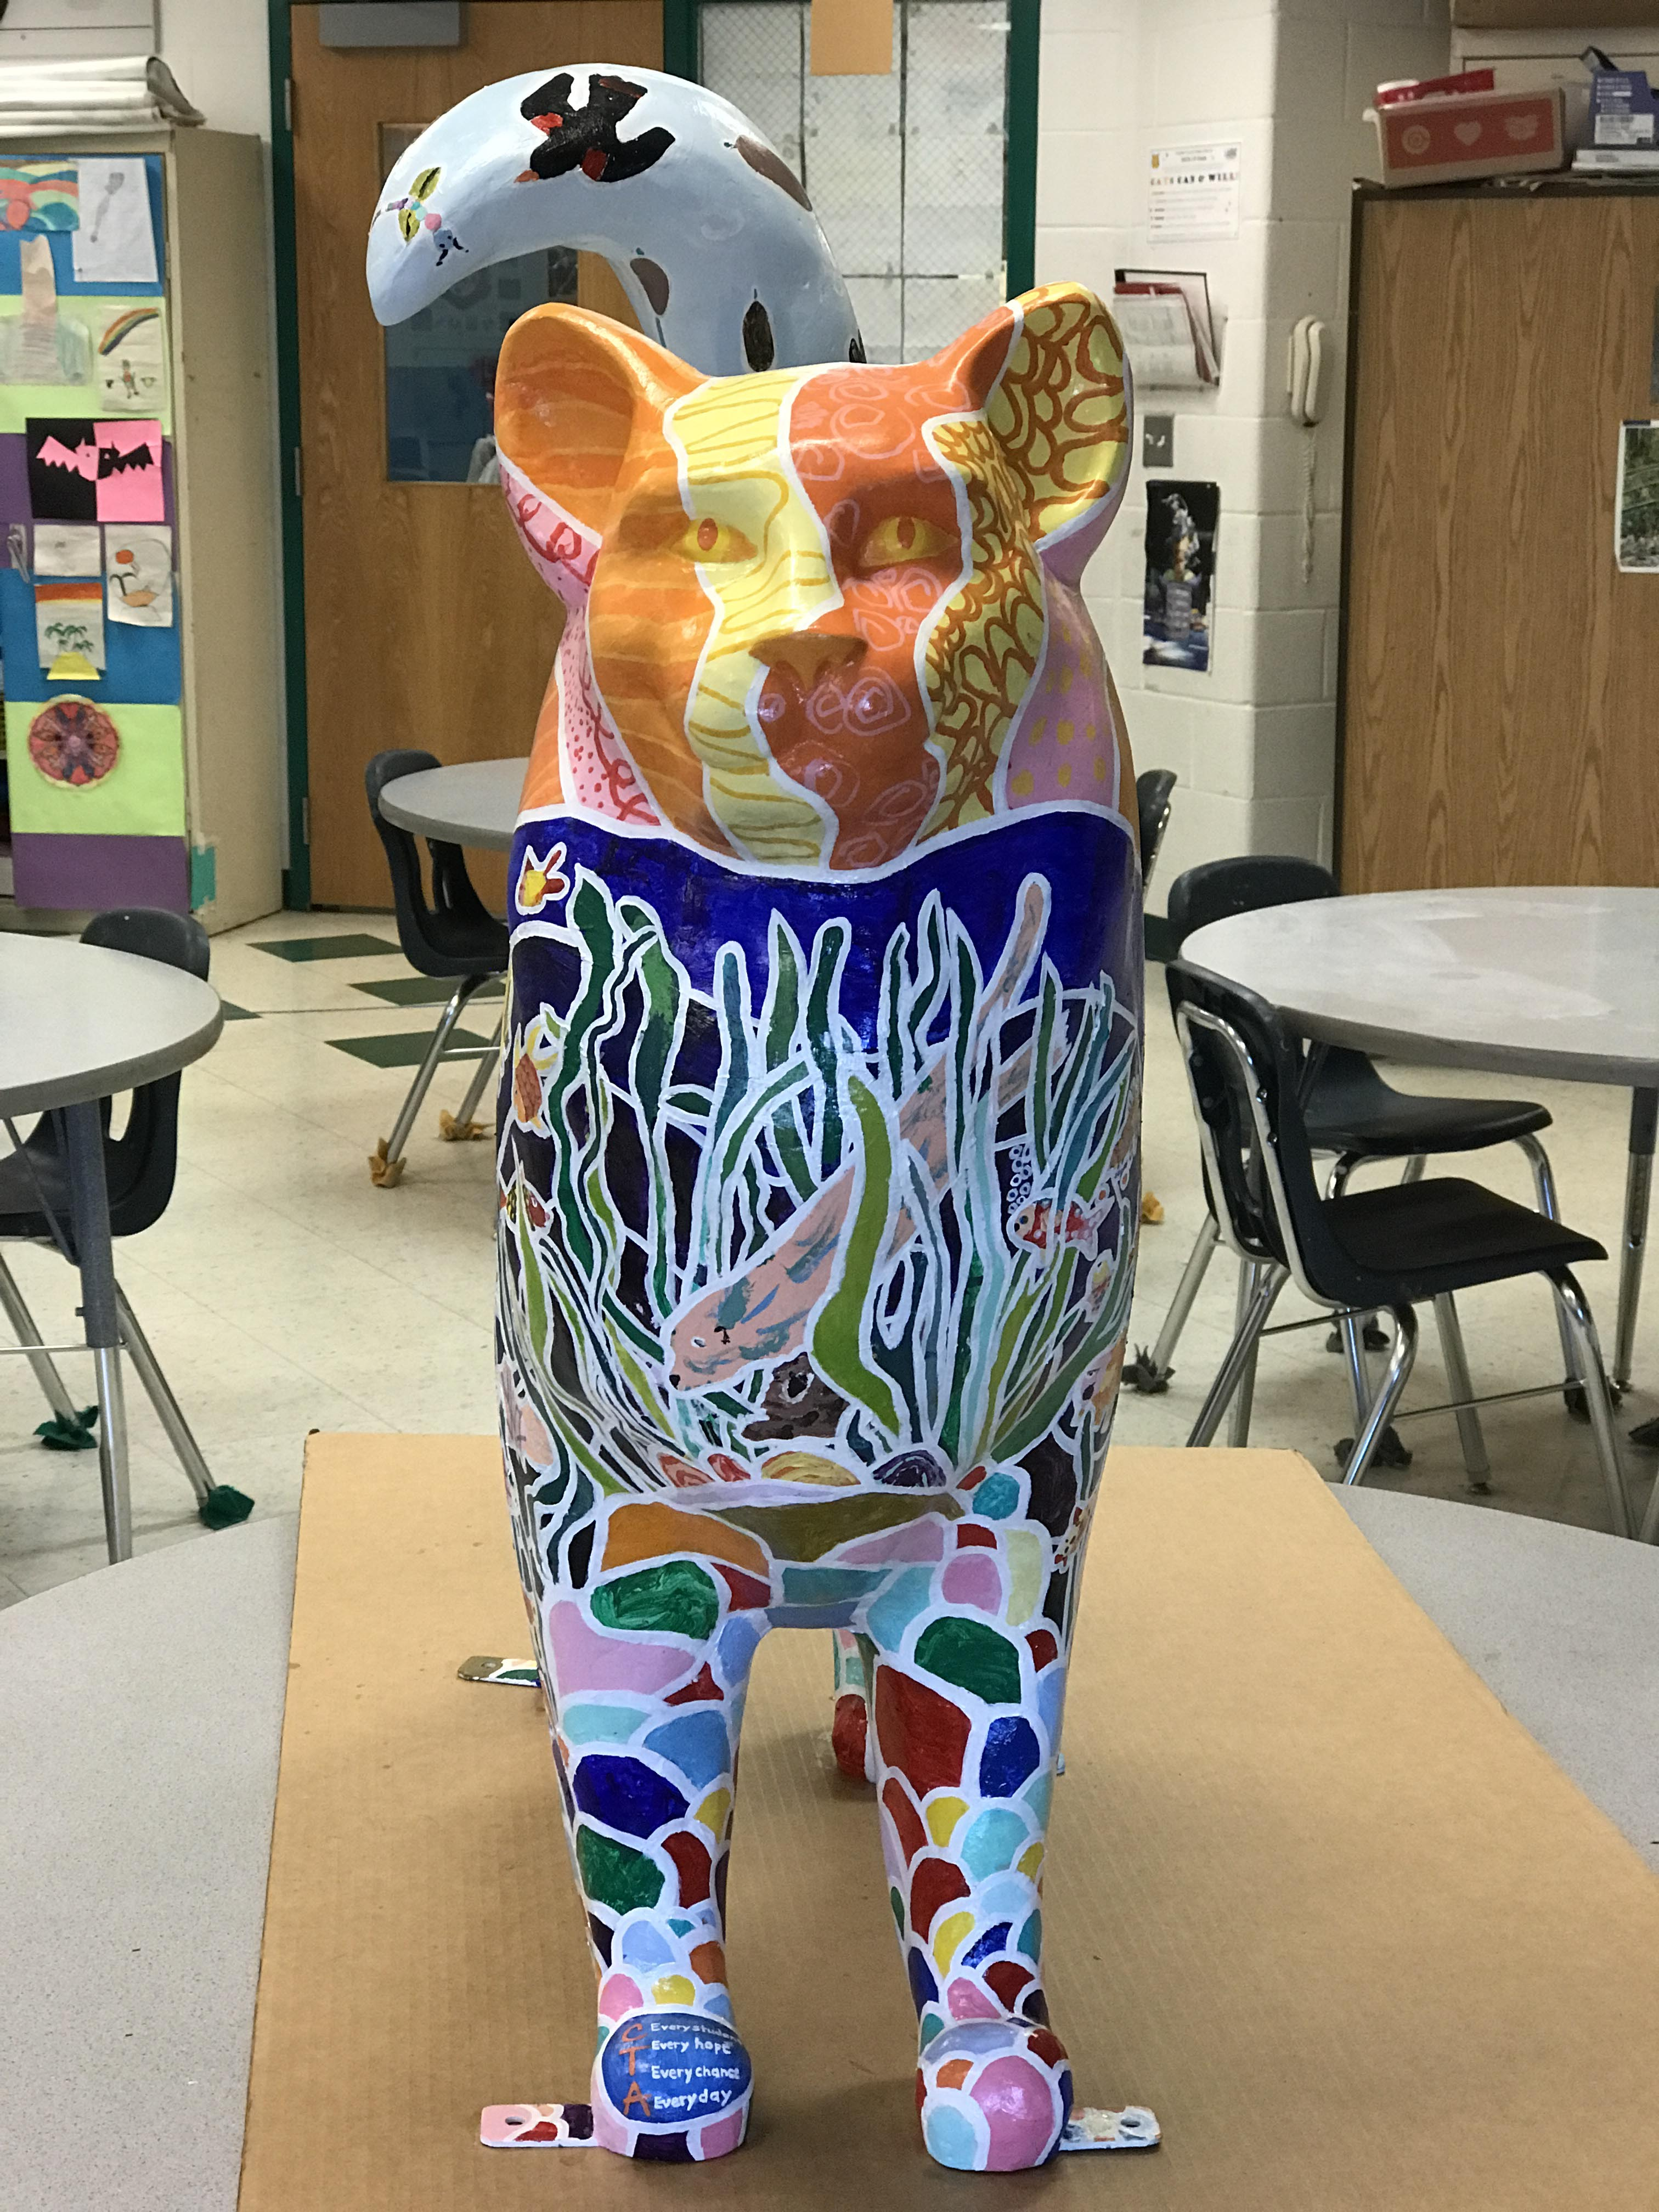 front view of finished cat showing pond motif